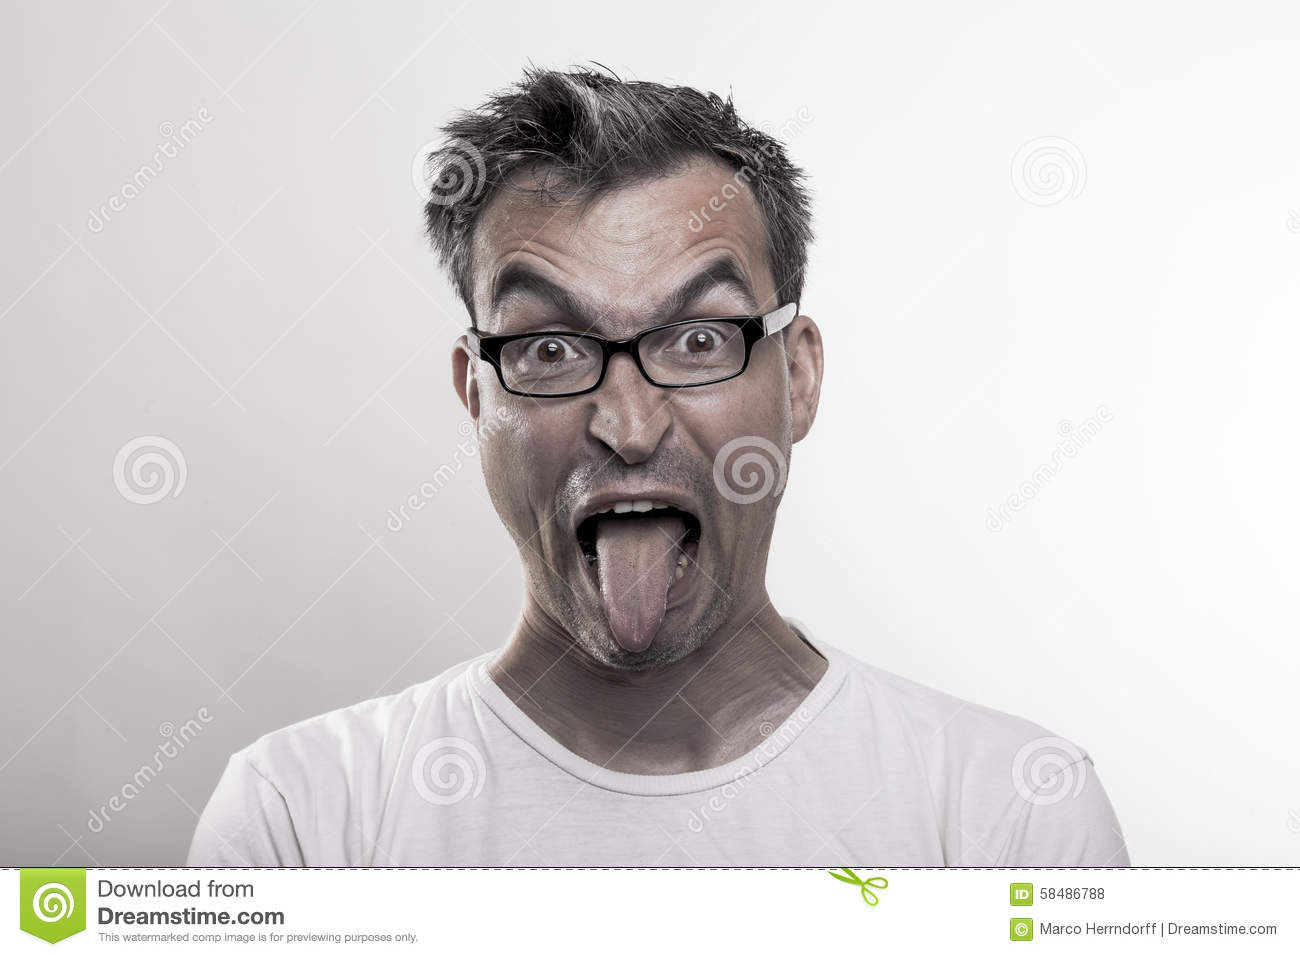 Portrait of a man in disgust poking out his tongue